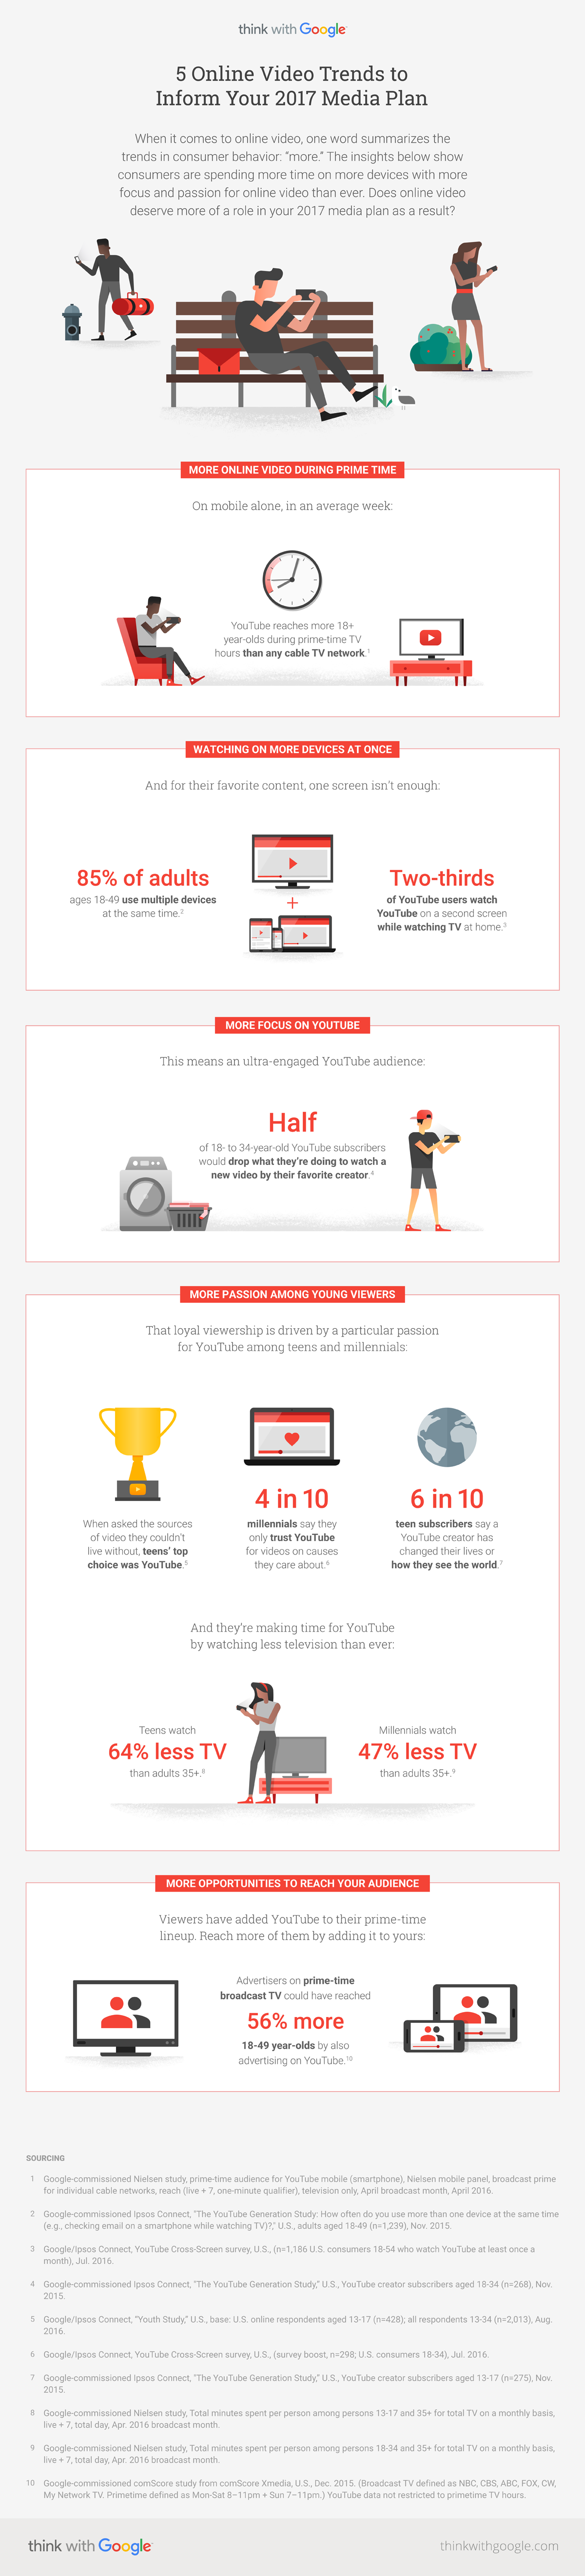 6 Reasons that Make the Case for Video Marketing in Every Plan - Think with Google video marketing infographic